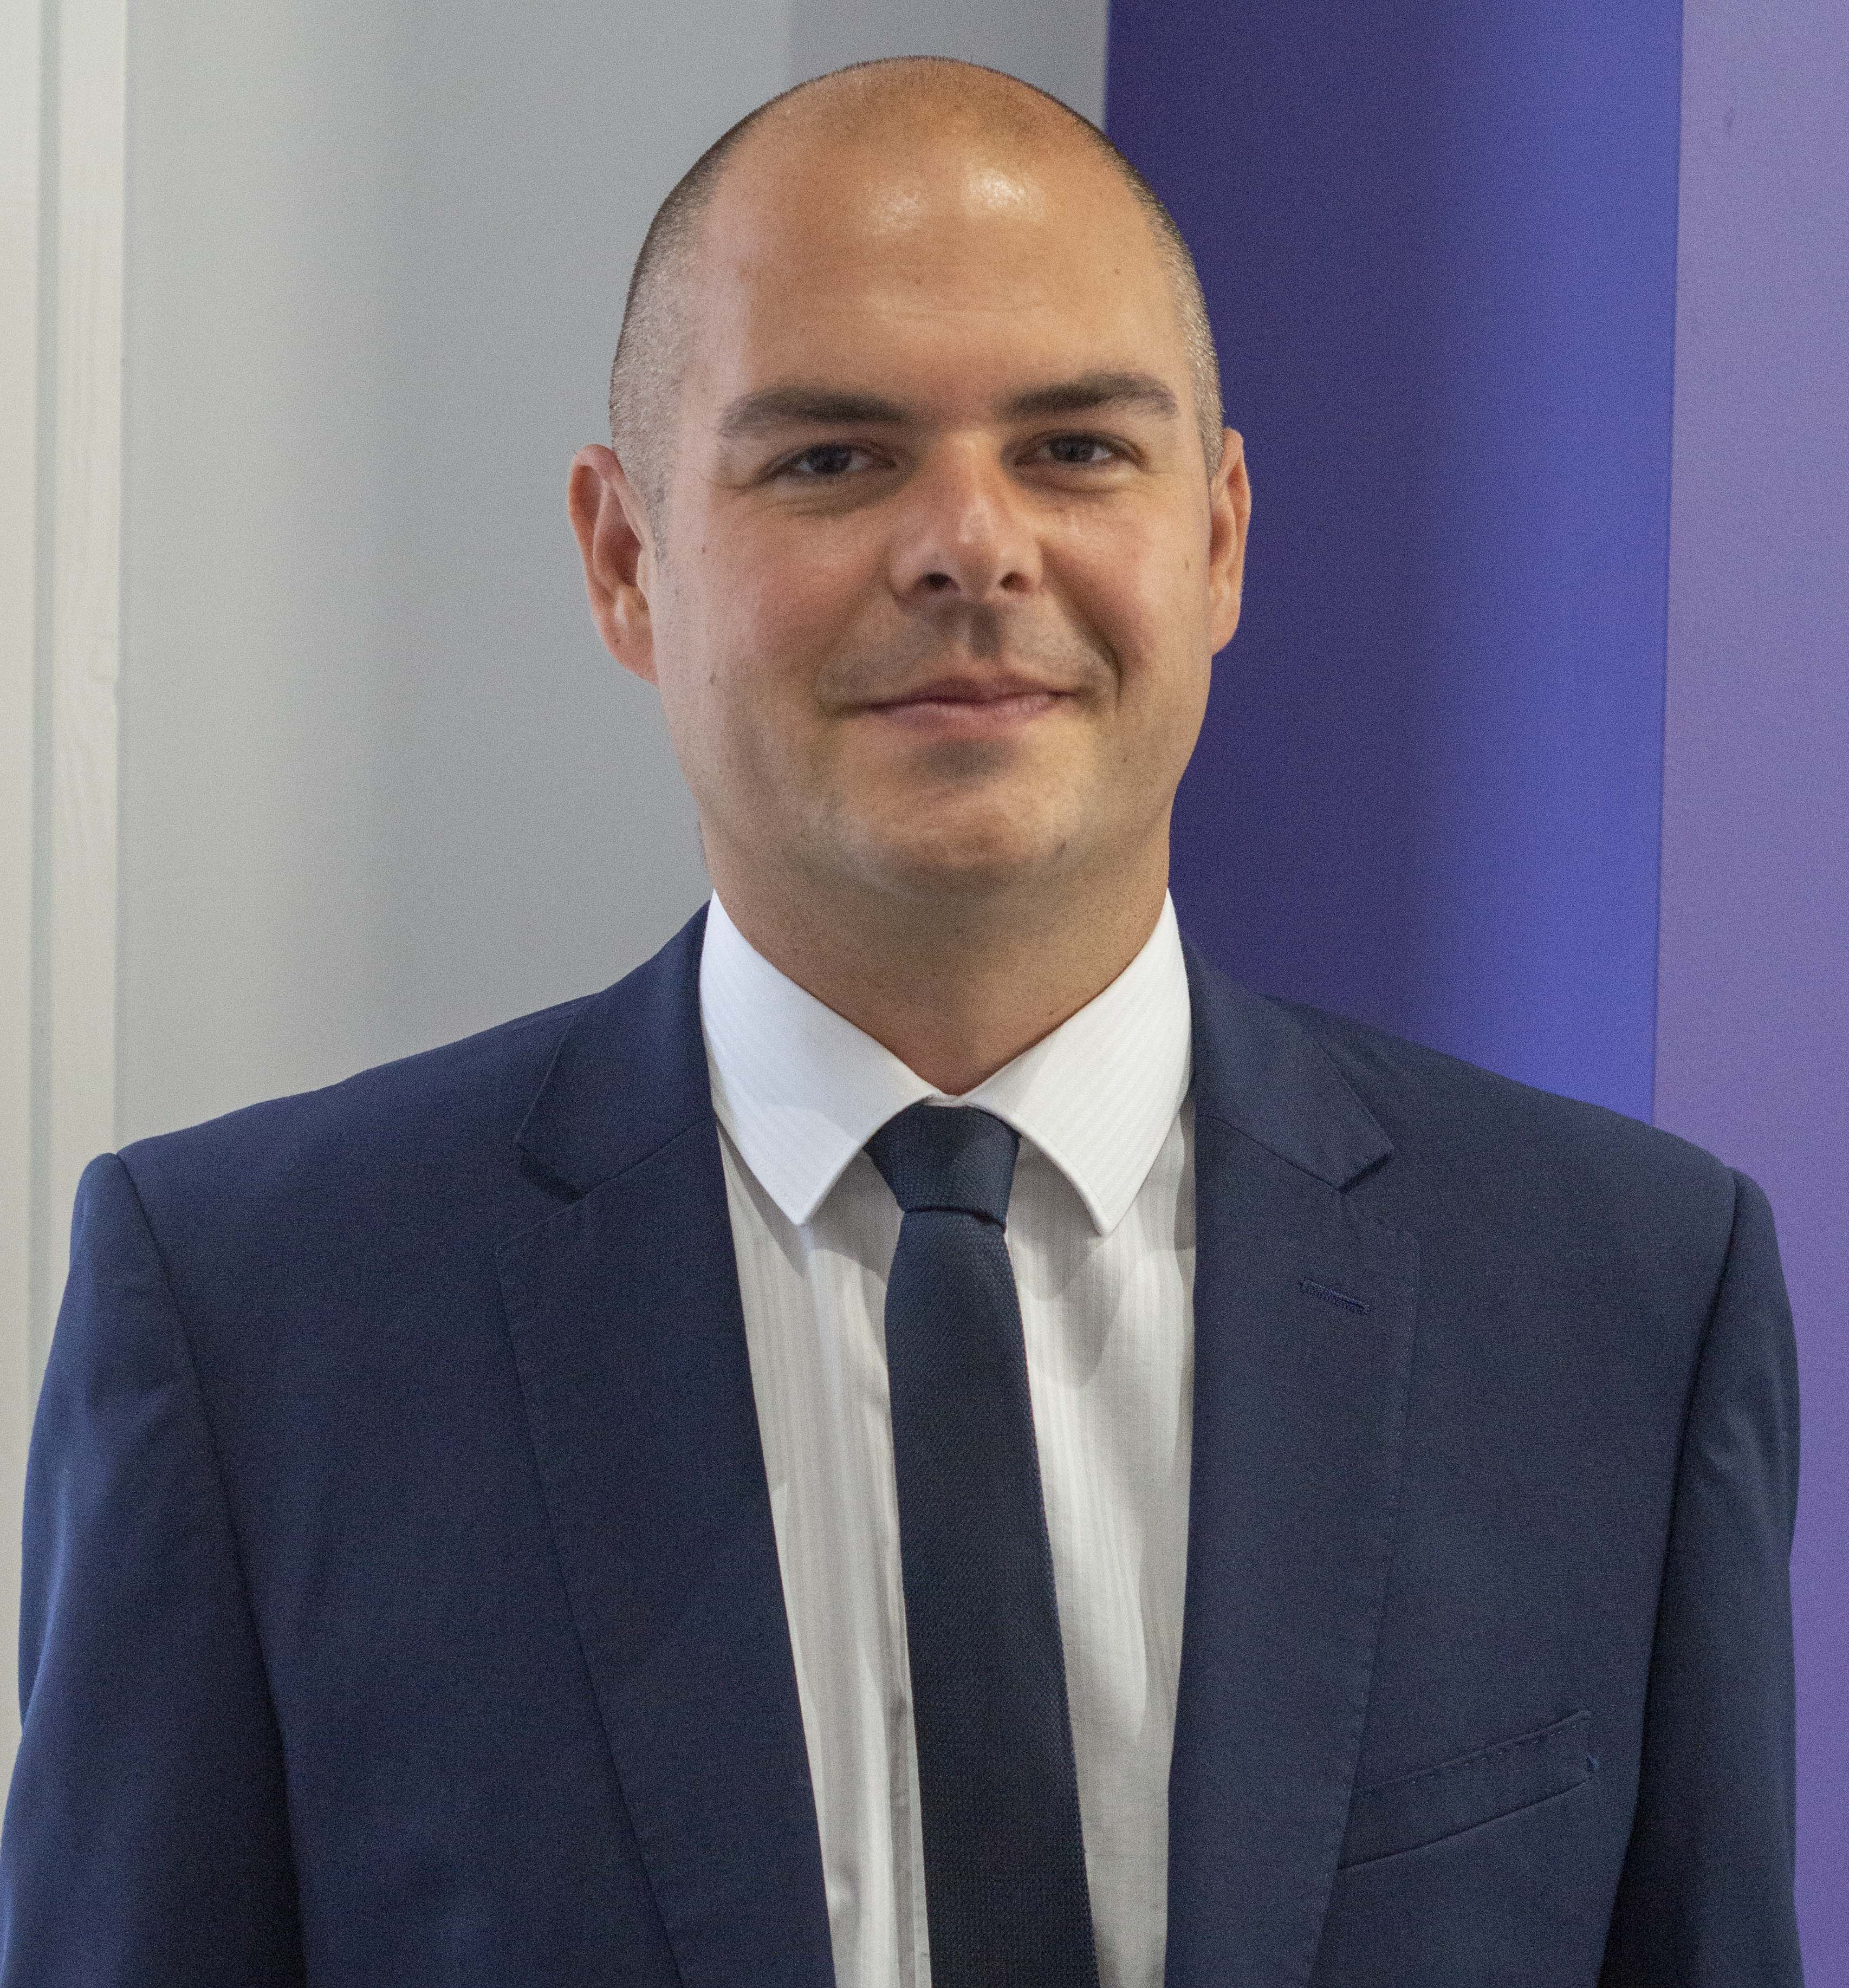 Stephen Greenwood Commercial Property Solicitor Farleys Solicitors